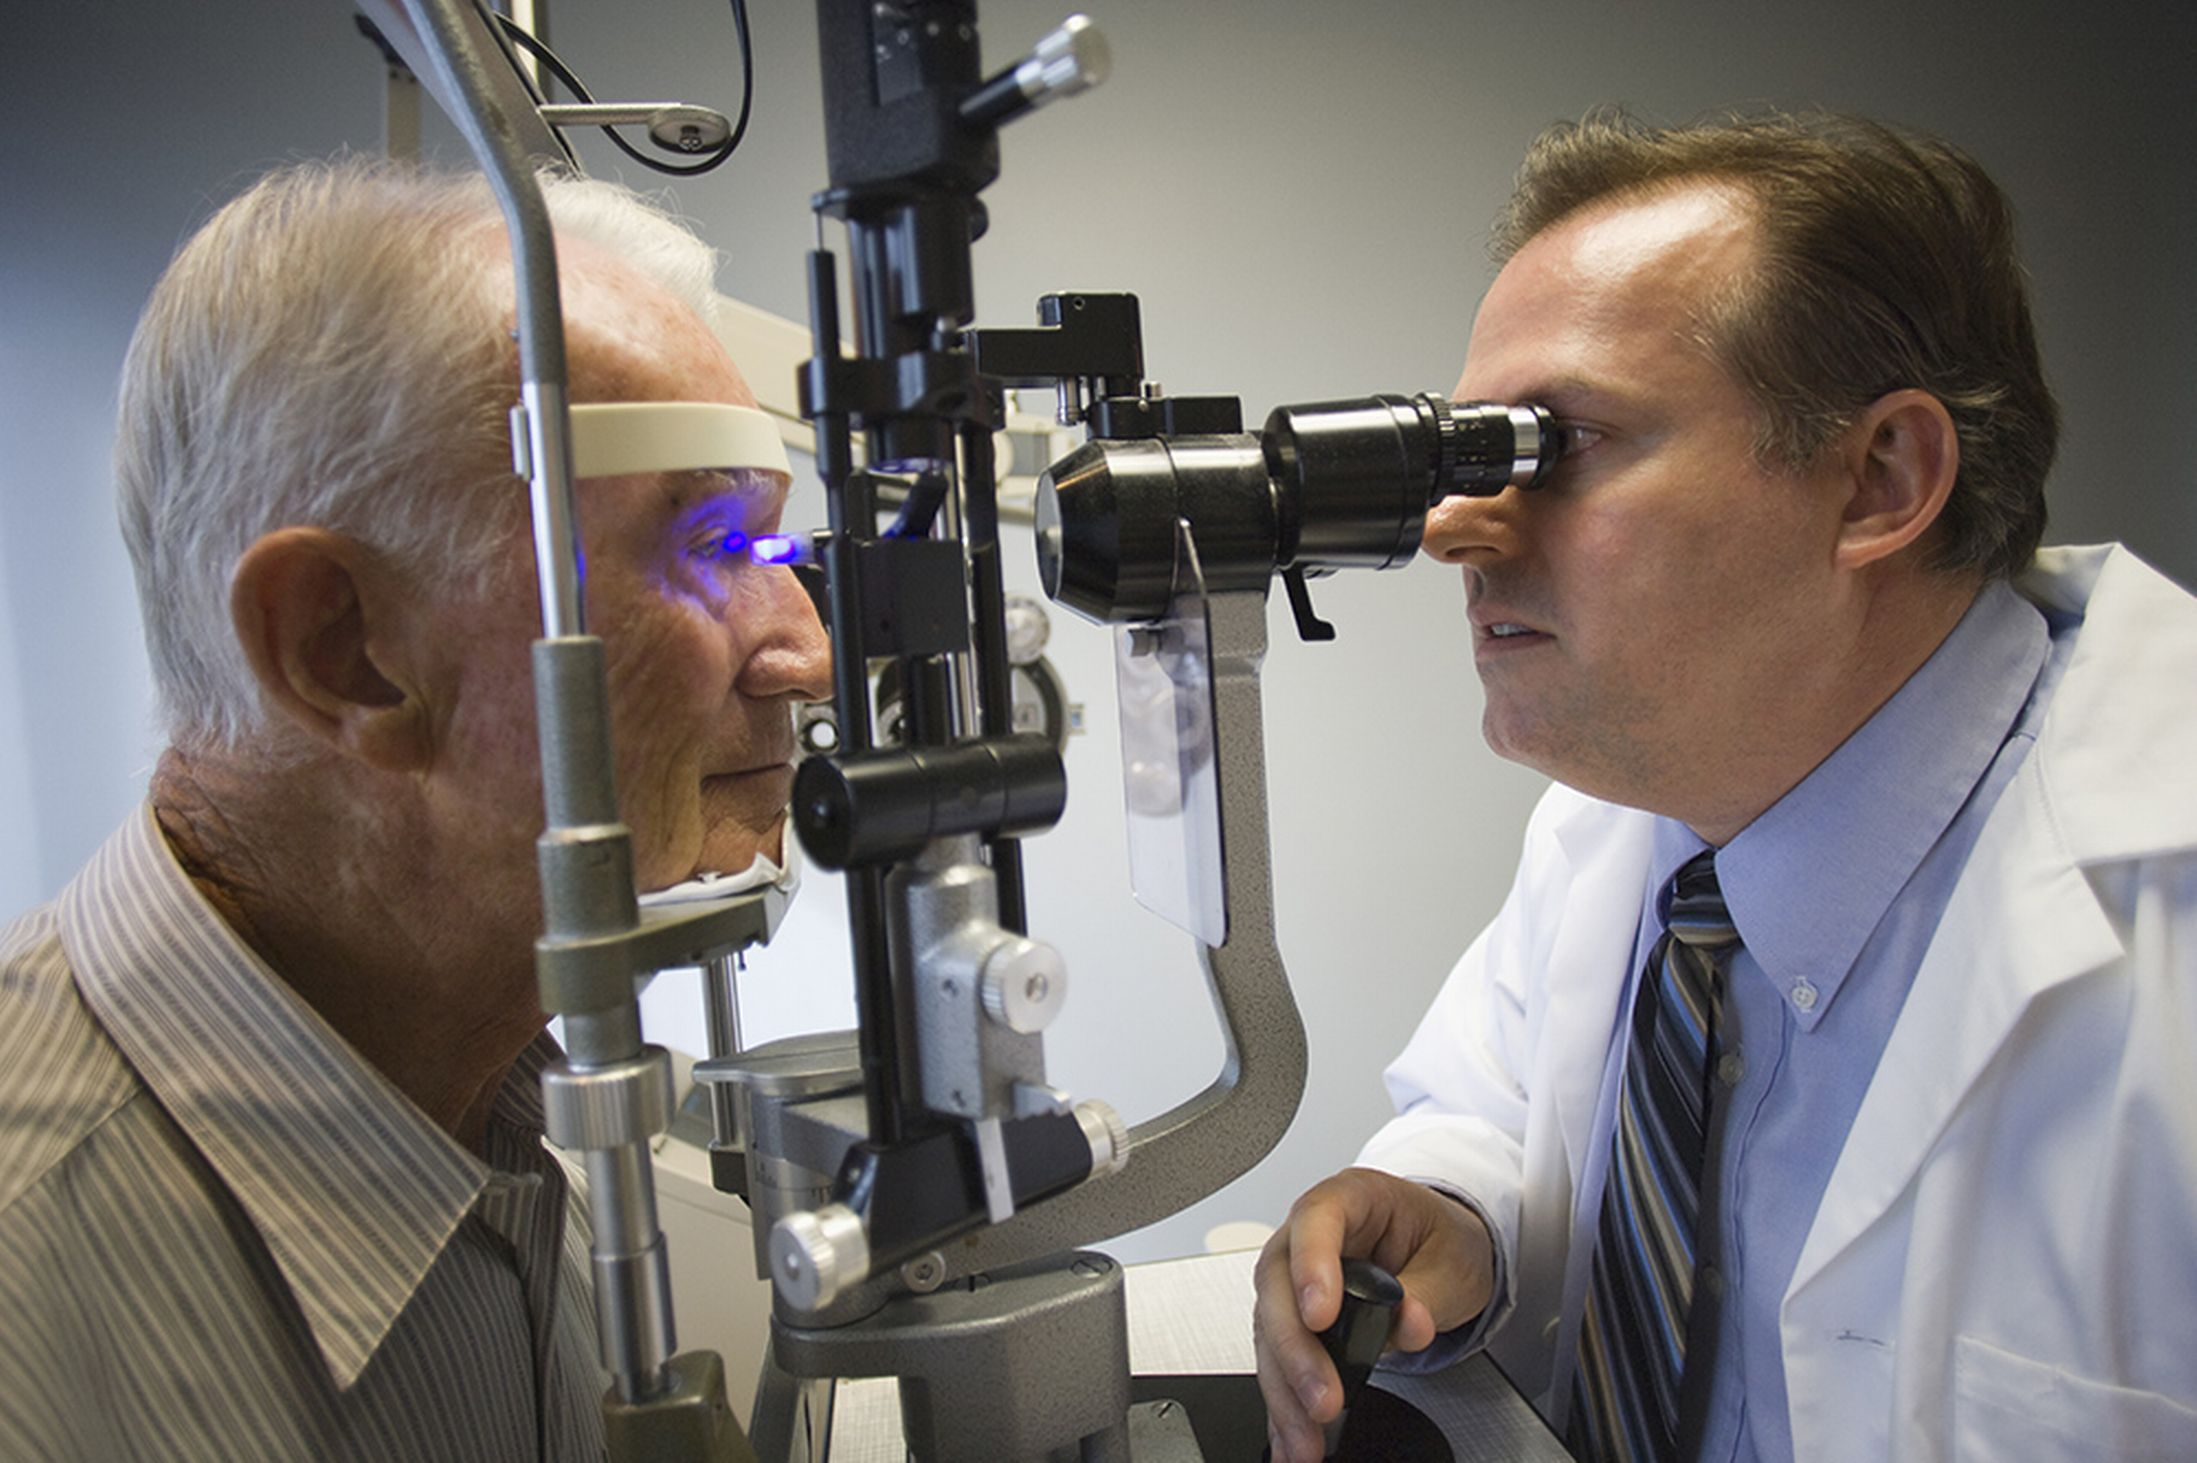 Alzheimer   s may soon be detected with a simple eye exam